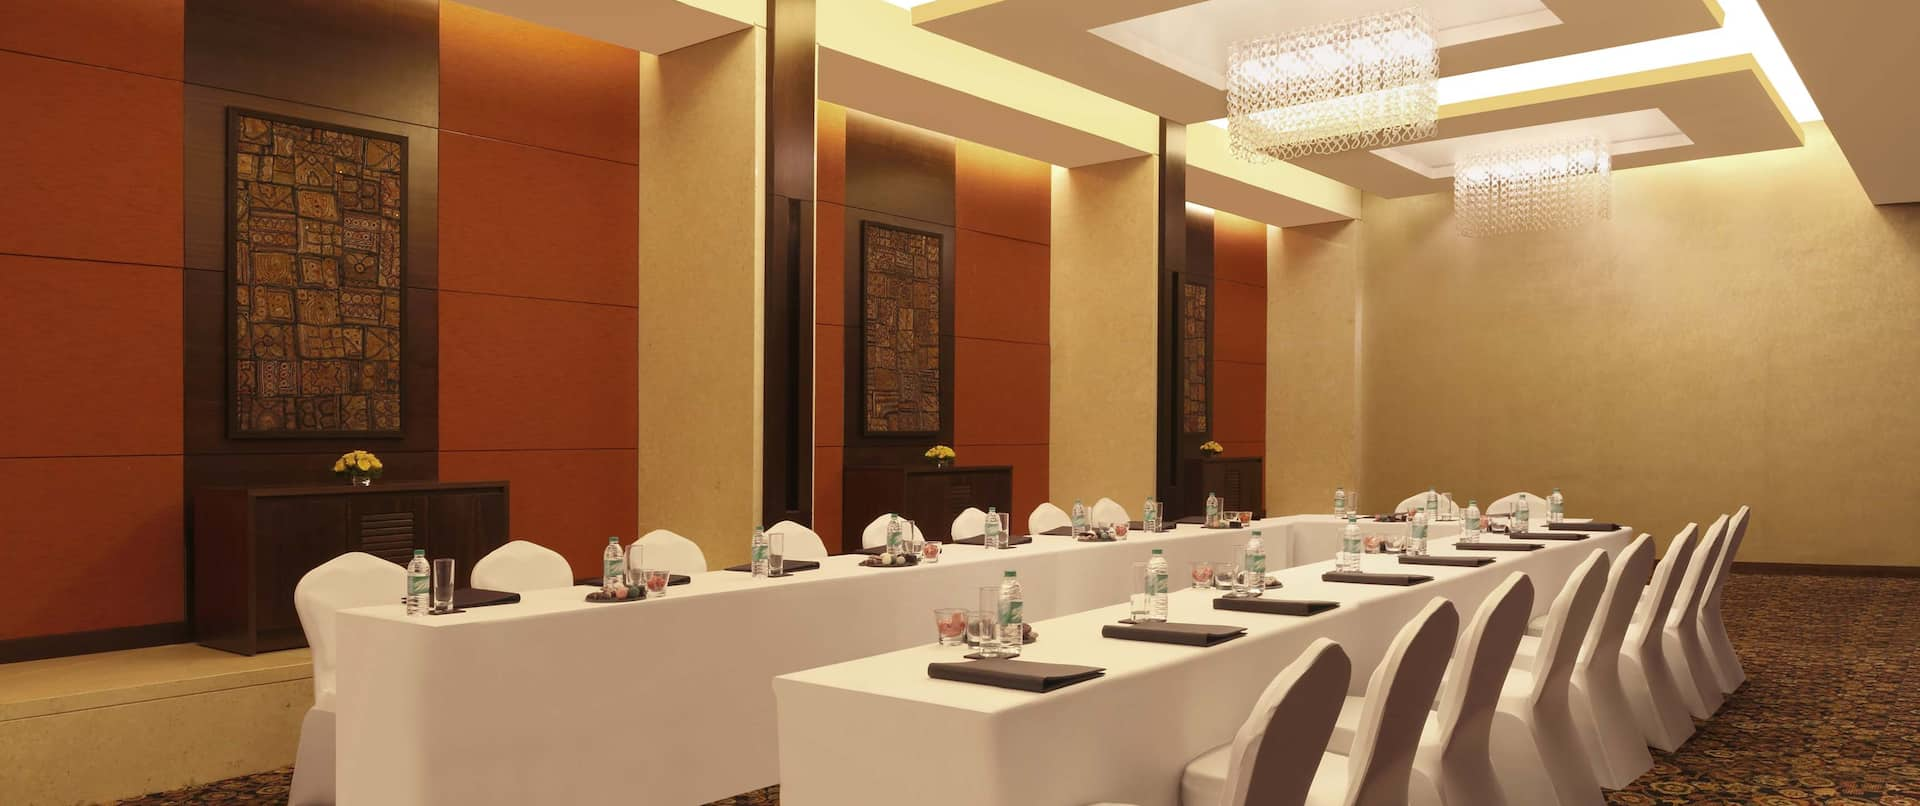 Vihara Banquet Hall With Wall Art, U-Shaped Table With Water Bottles, Notepads,  White Linens, and White Chairs